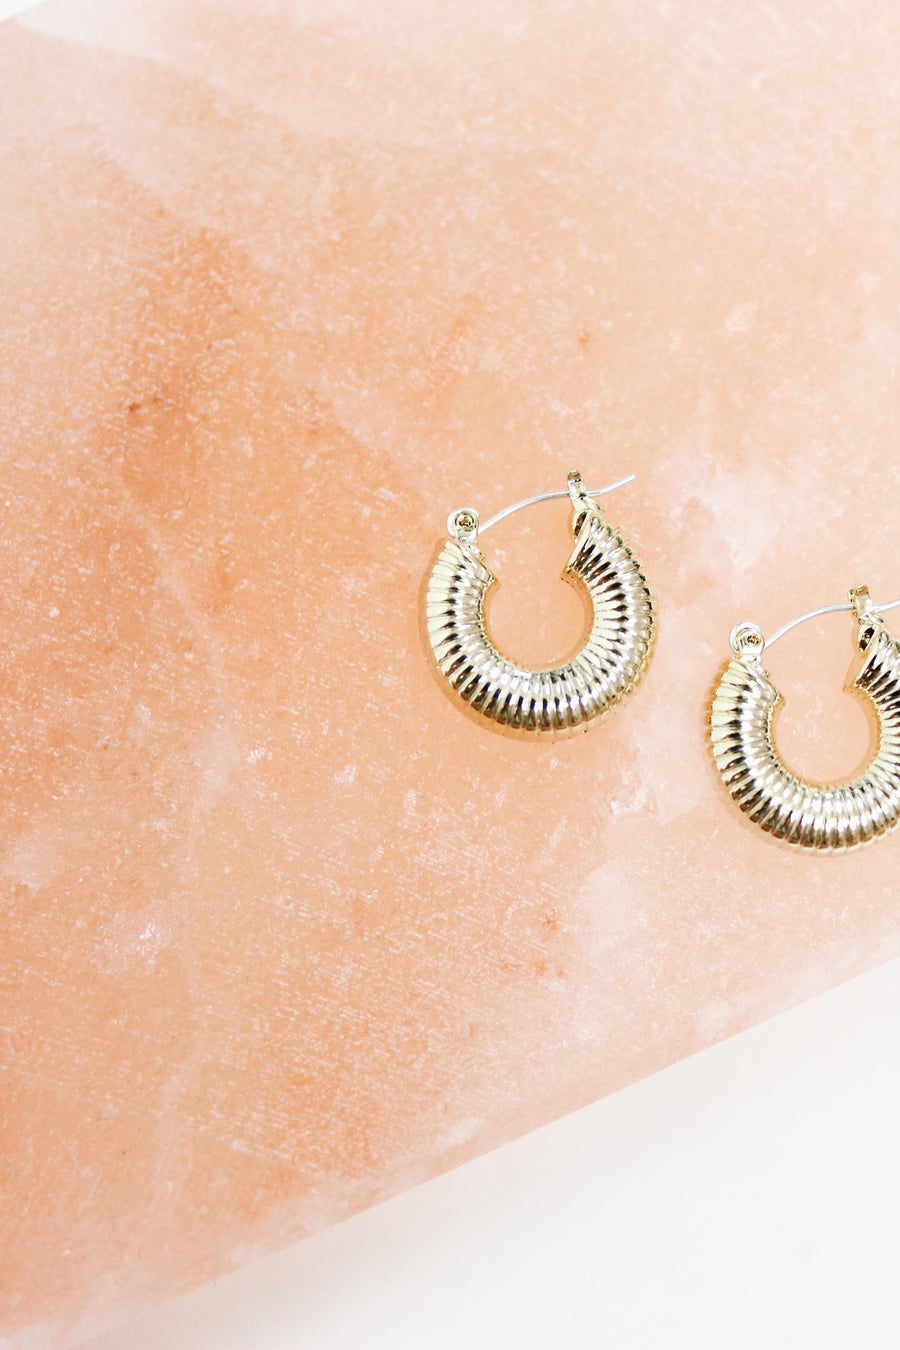 SWEET SPOT GOLD HOOPS - Halite Clothing